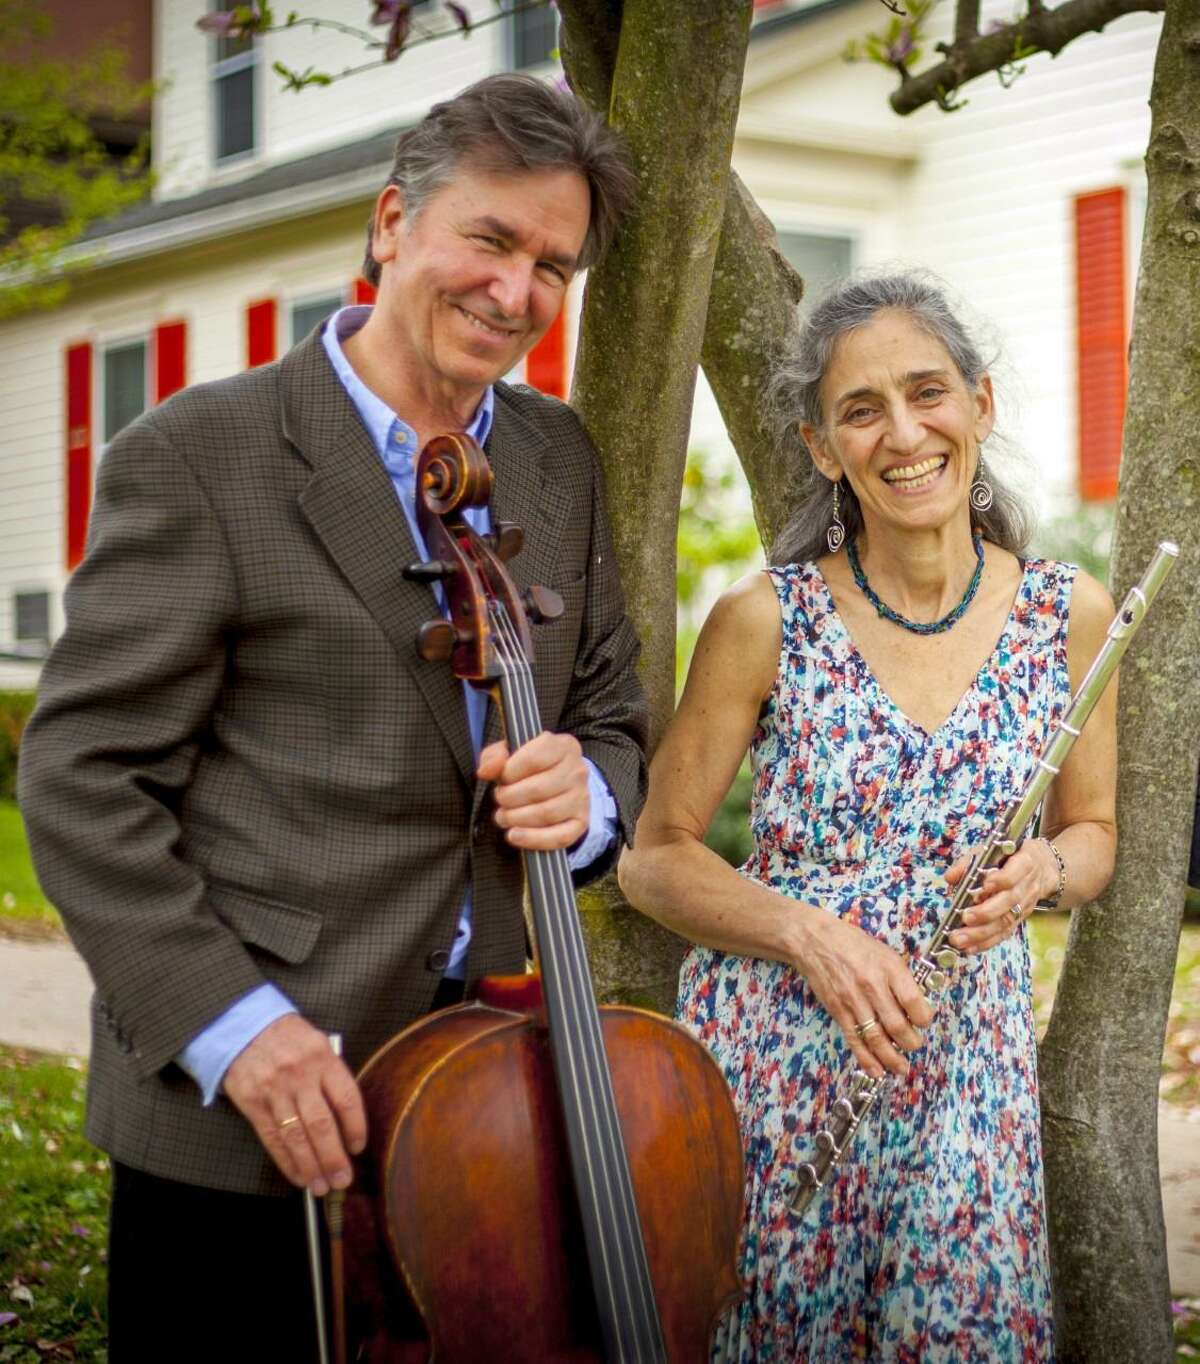 From left, Eliot Bailen and Susan Rotholz.